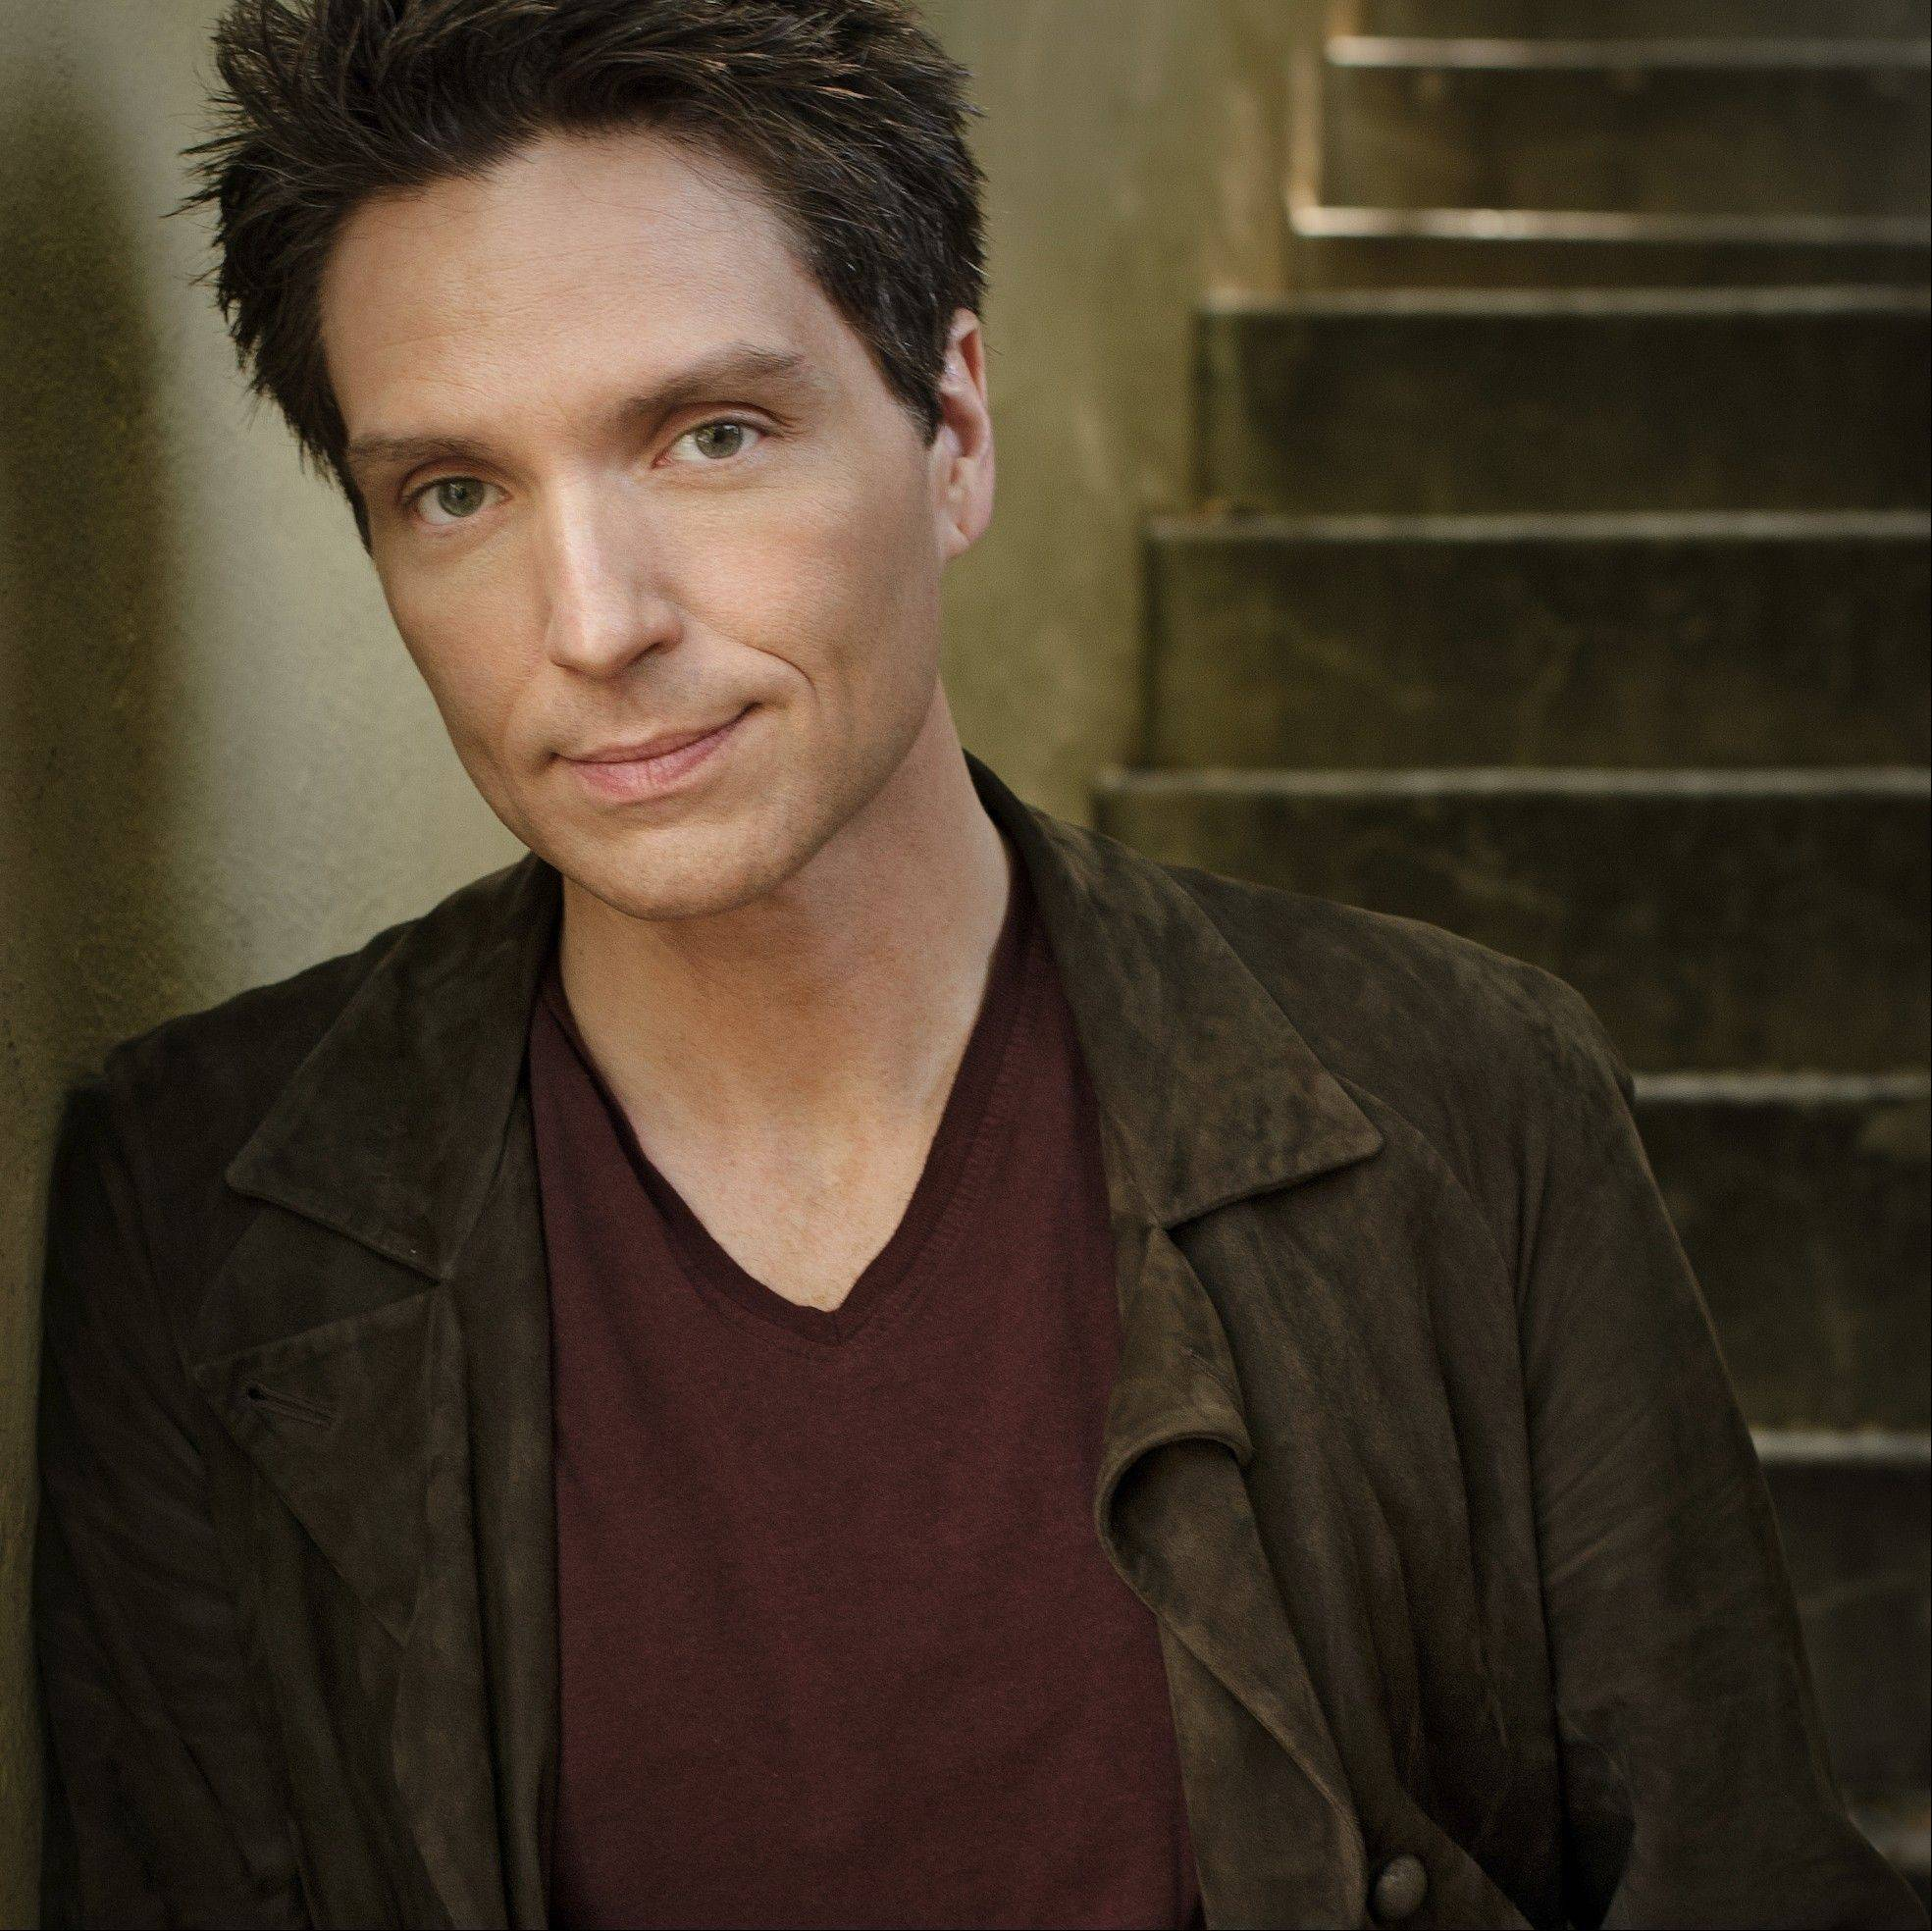 Richard Marx will be the headliner at Raue Center for the Arts second annual National Piano Conference. He will perform at 8 p.m. Saturday, June 29.